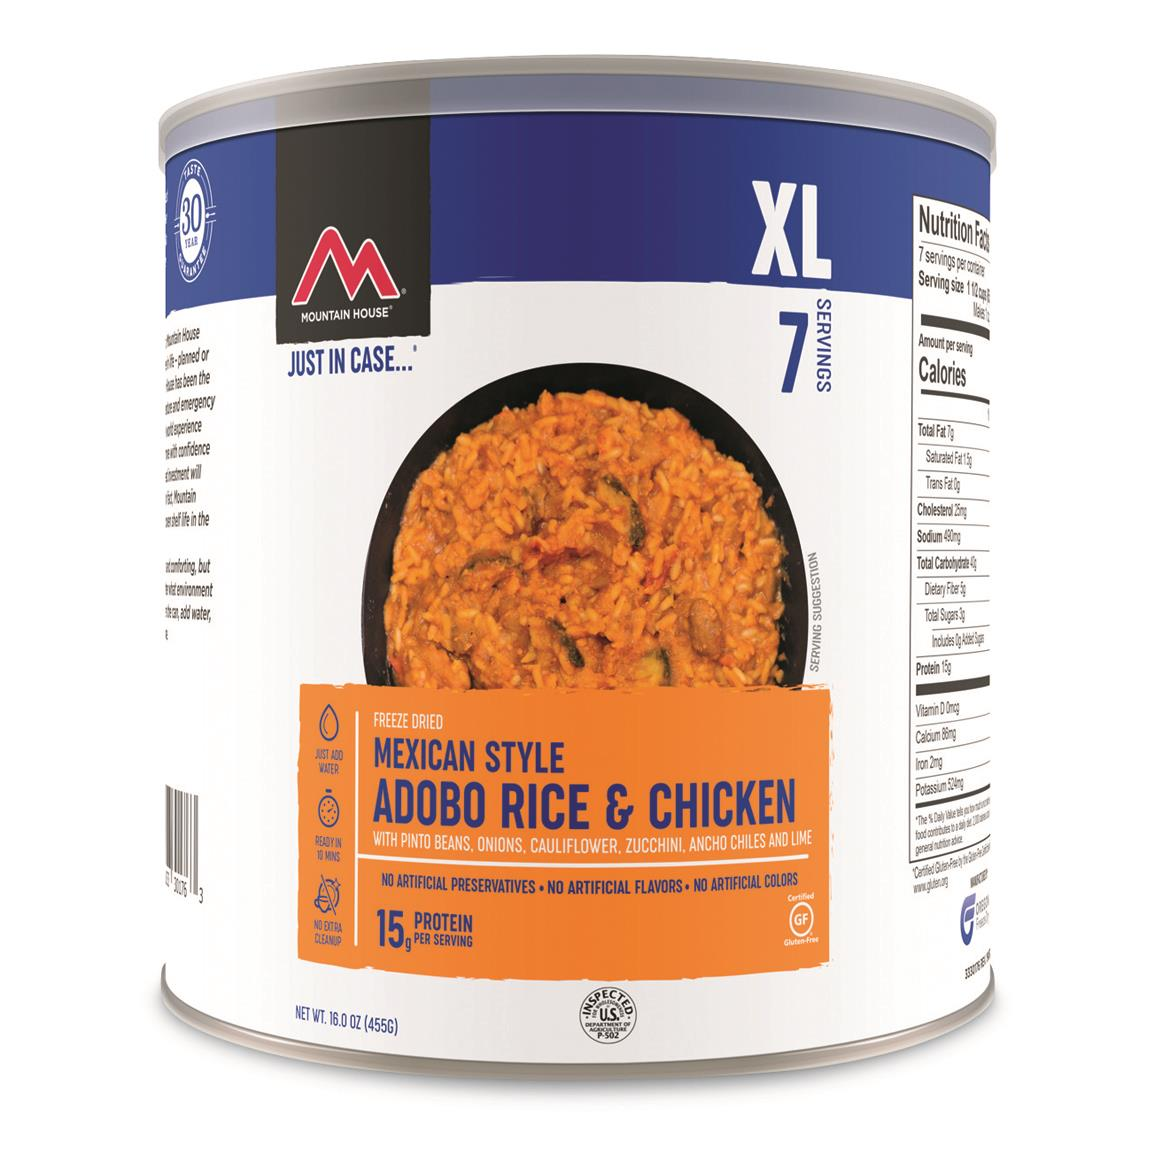 Mountain House Emergency Food Freeze-Dried Mexican-style Adobe Rice and Chicken, 7 Servings